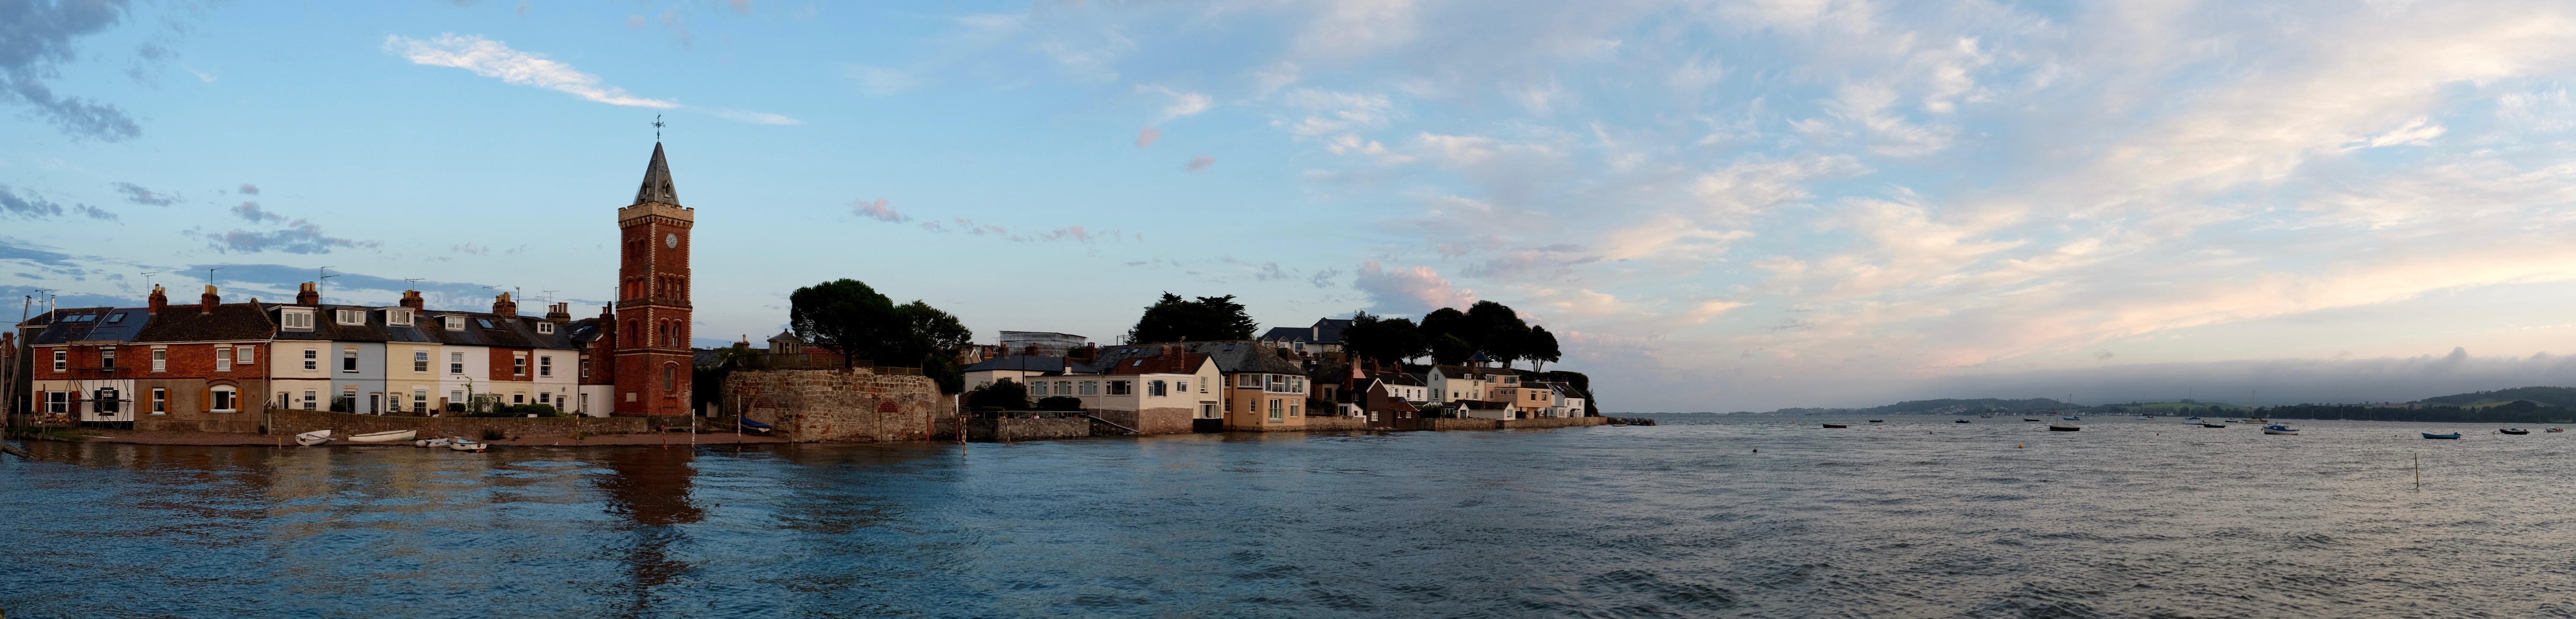 Lympstone foreshore from the harbour